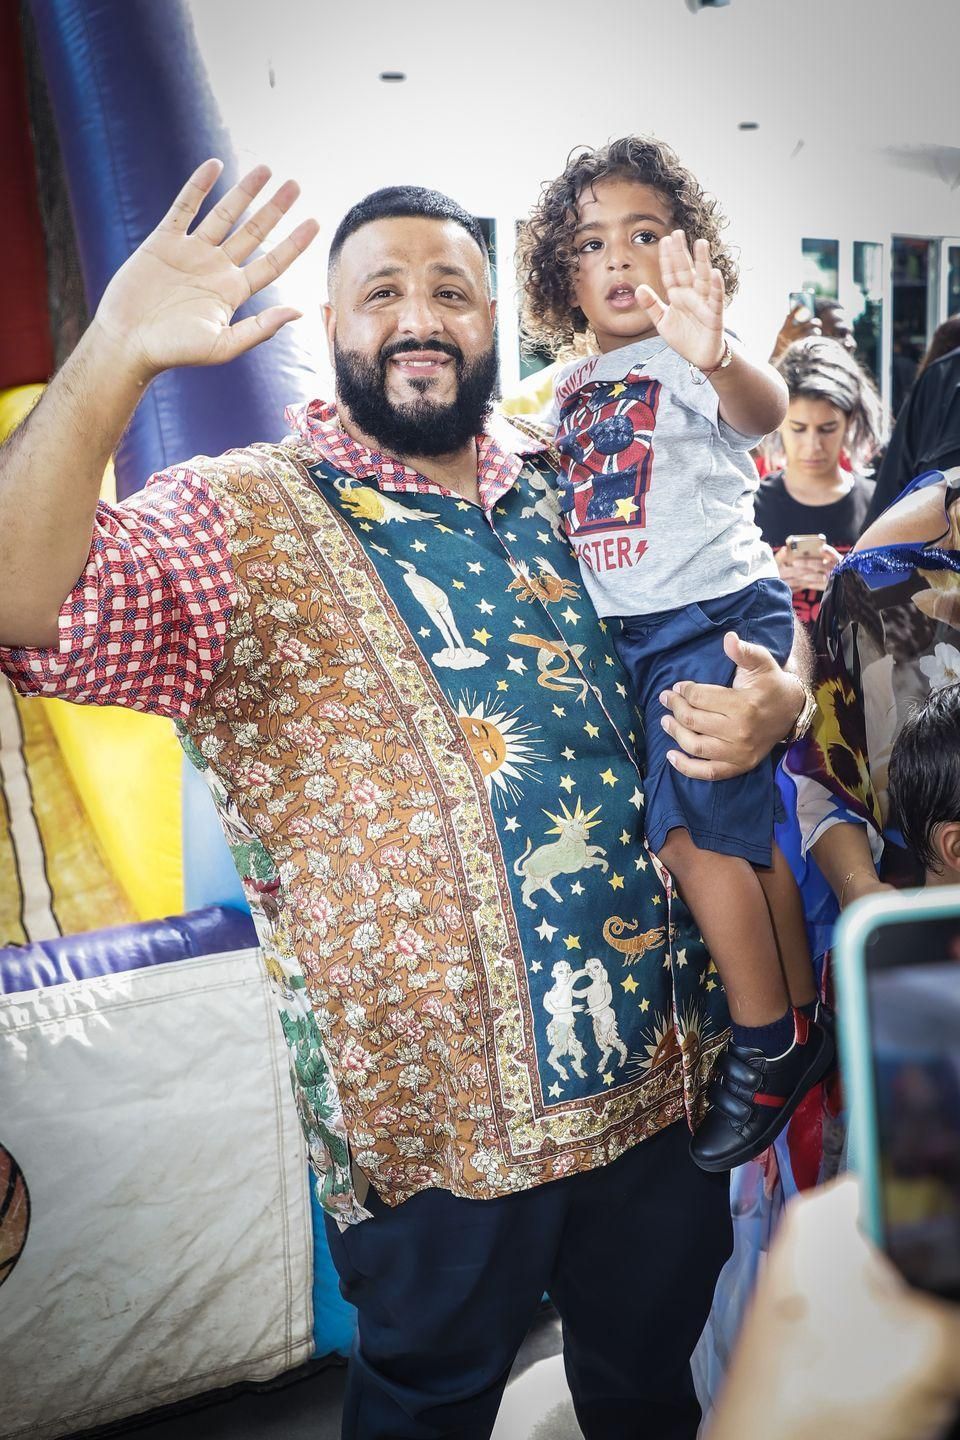 """<p><strong>Children</strong>: Asahd Tuck Khaled (3) and Aalam Khaled (4 months)</p><p>You may know the chart-topping DJ and record producer for his <a href=""""https://www.oprahmag.com/entertainment/g27373012/best-songs-of-summer/?slide=8"""" rel=""""nofollow noopener"""" target=""""_blank"""" data-ylk=""""slk:summer hit songs"""" class=""""link rapid-noclick-resp"""">summer hit songs</a>, but take one look at his <a href=""""https://www.instagram.com/djkhaled/"""" rel=""""nofollow noopener"""" target=""""_blank"""" data-ylk=""""slk:Instagram"""" class=""""link rapid-noclick-resp"""">Instagram</a> and it's easy to see that his sons are the joy of his life. </p>"""